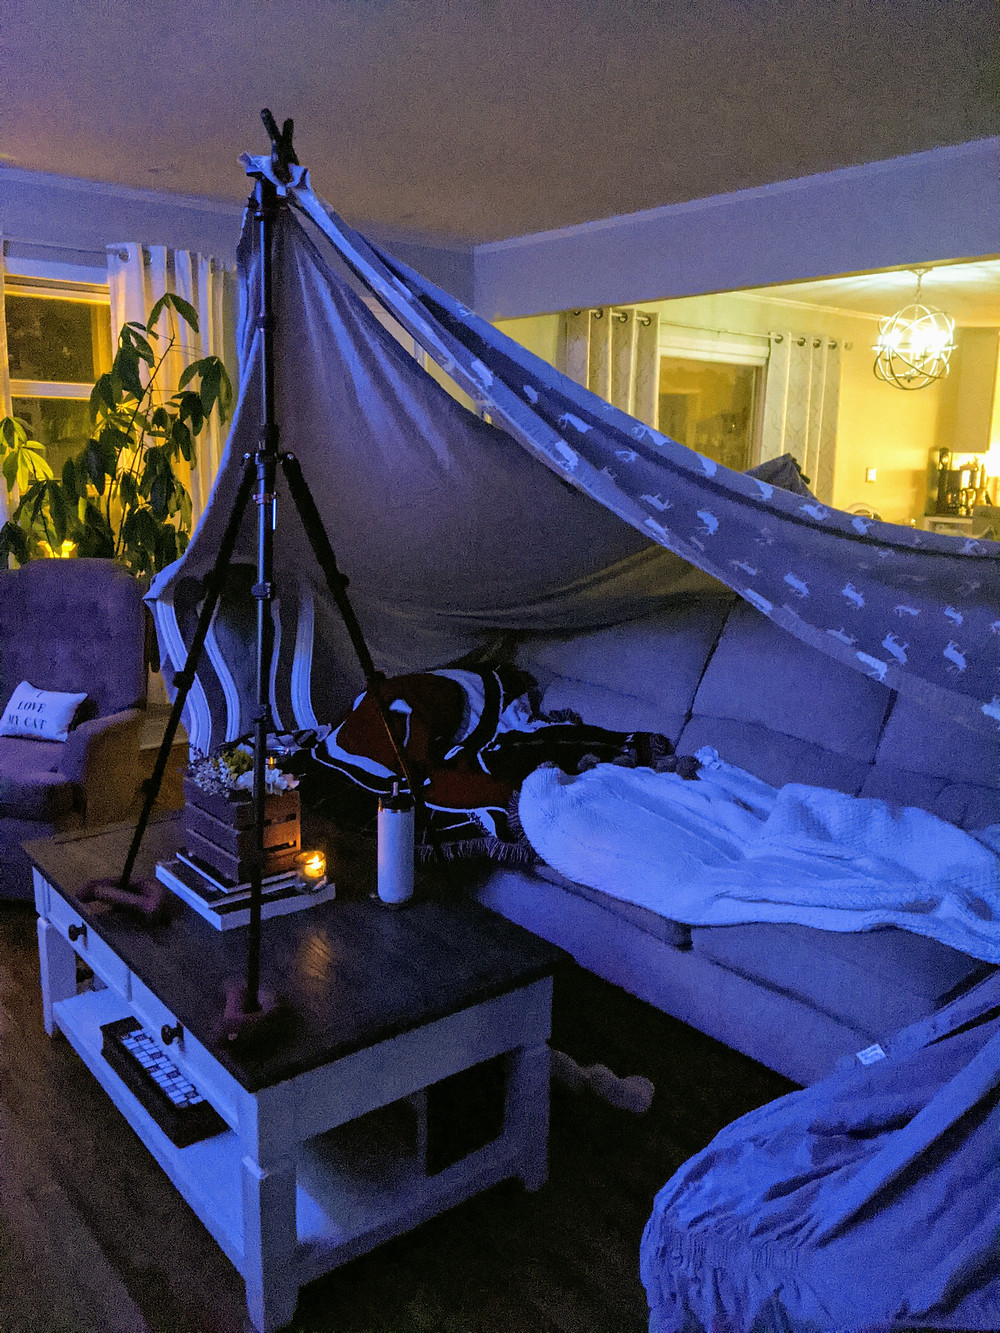 indoor camping date - Our At-Home Date Night Game - Amanda MacGregor - joseph centineo